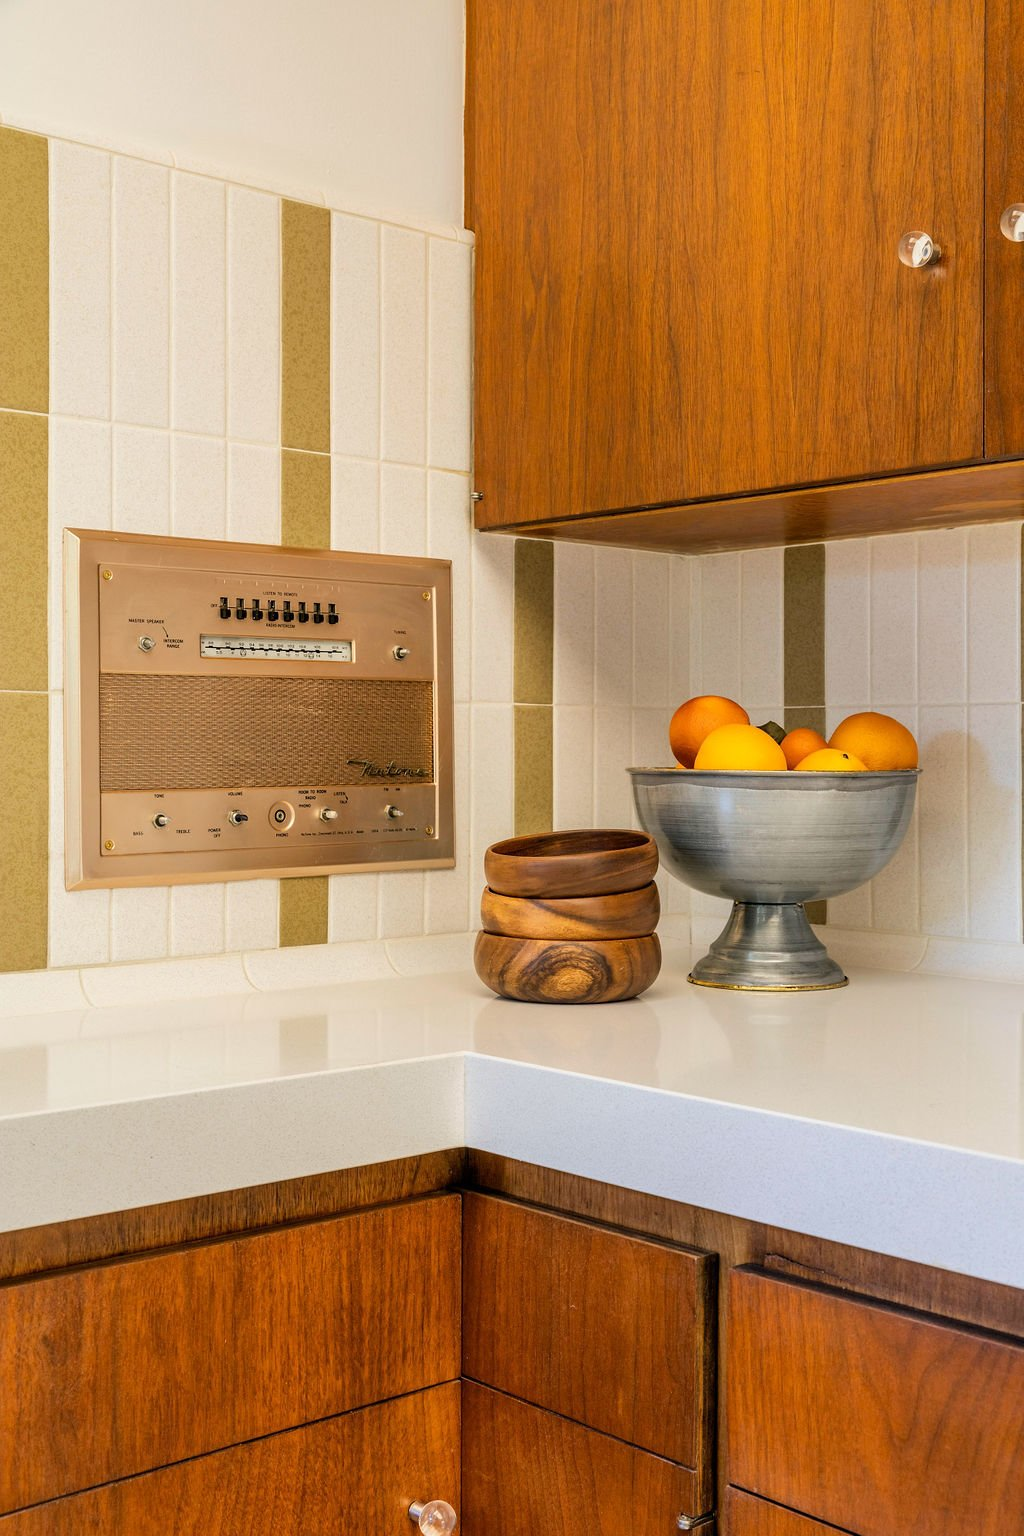 Built-in Nutone appliances and backsplash tile from Heath Ceramics are more period details.  Photo 5 of 16 in A Restored Post-and-Beam by a Richard Neutra Protégé Lists for $700K